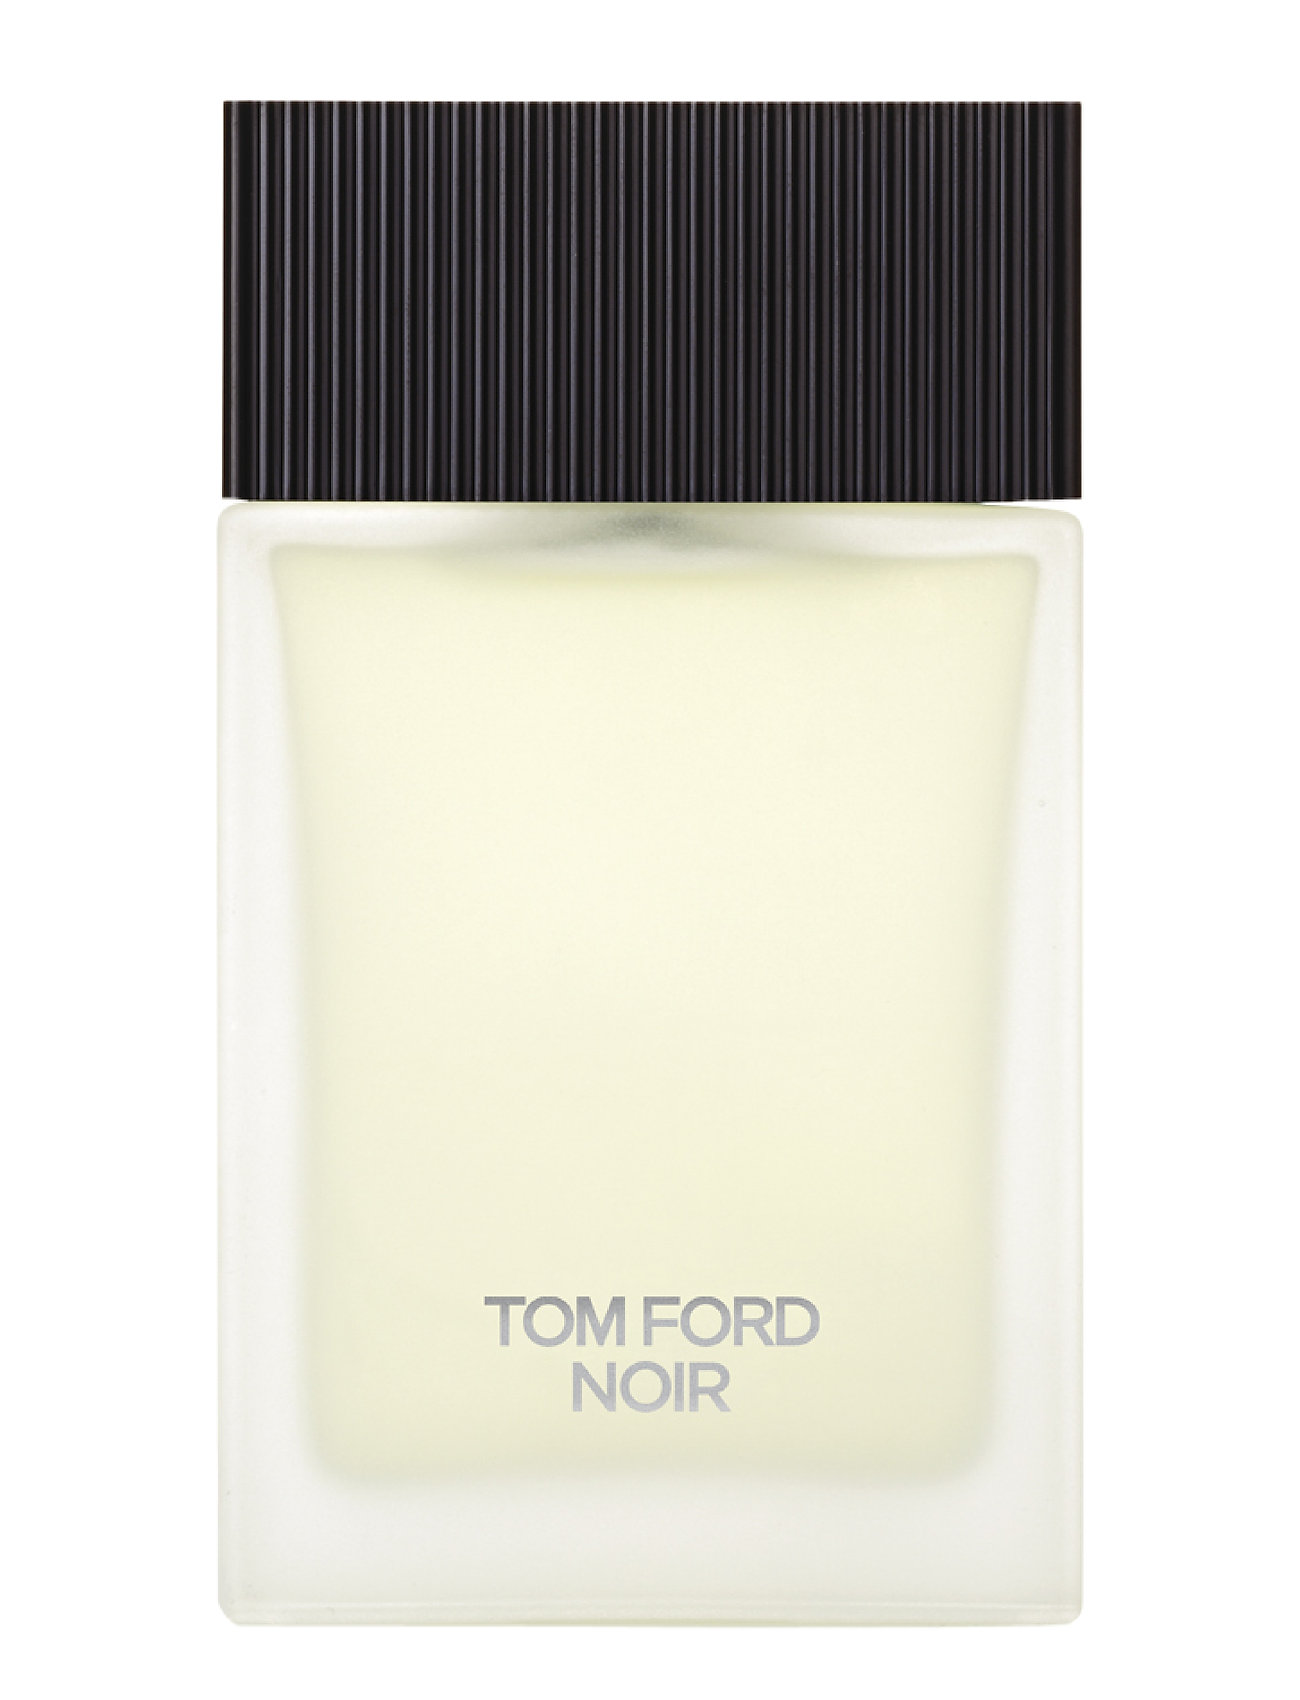 Tom ford tom ford noir eau de toilette fra tom ford – beauty men